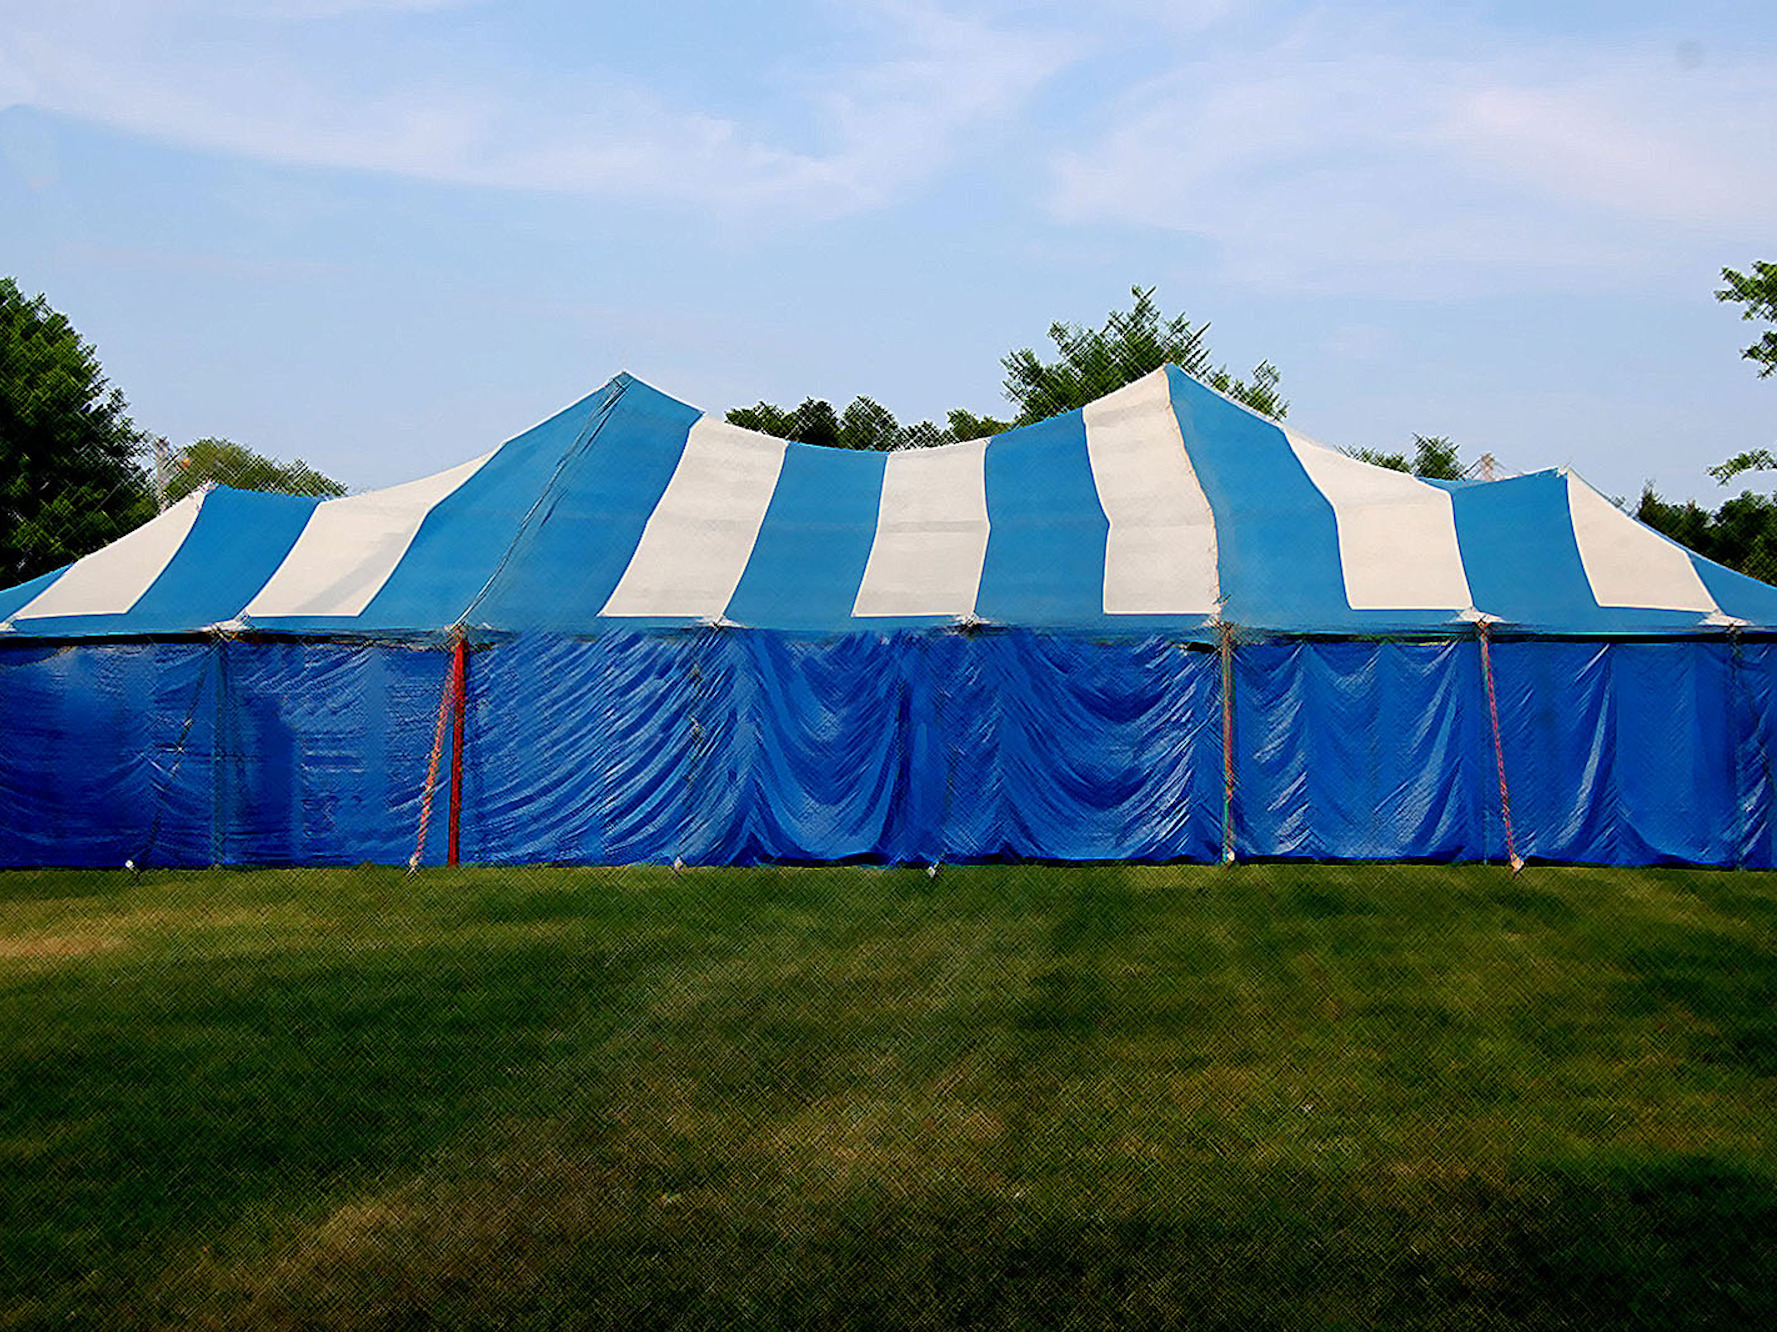 & Revival Tent Project - The Fishermen Ministry